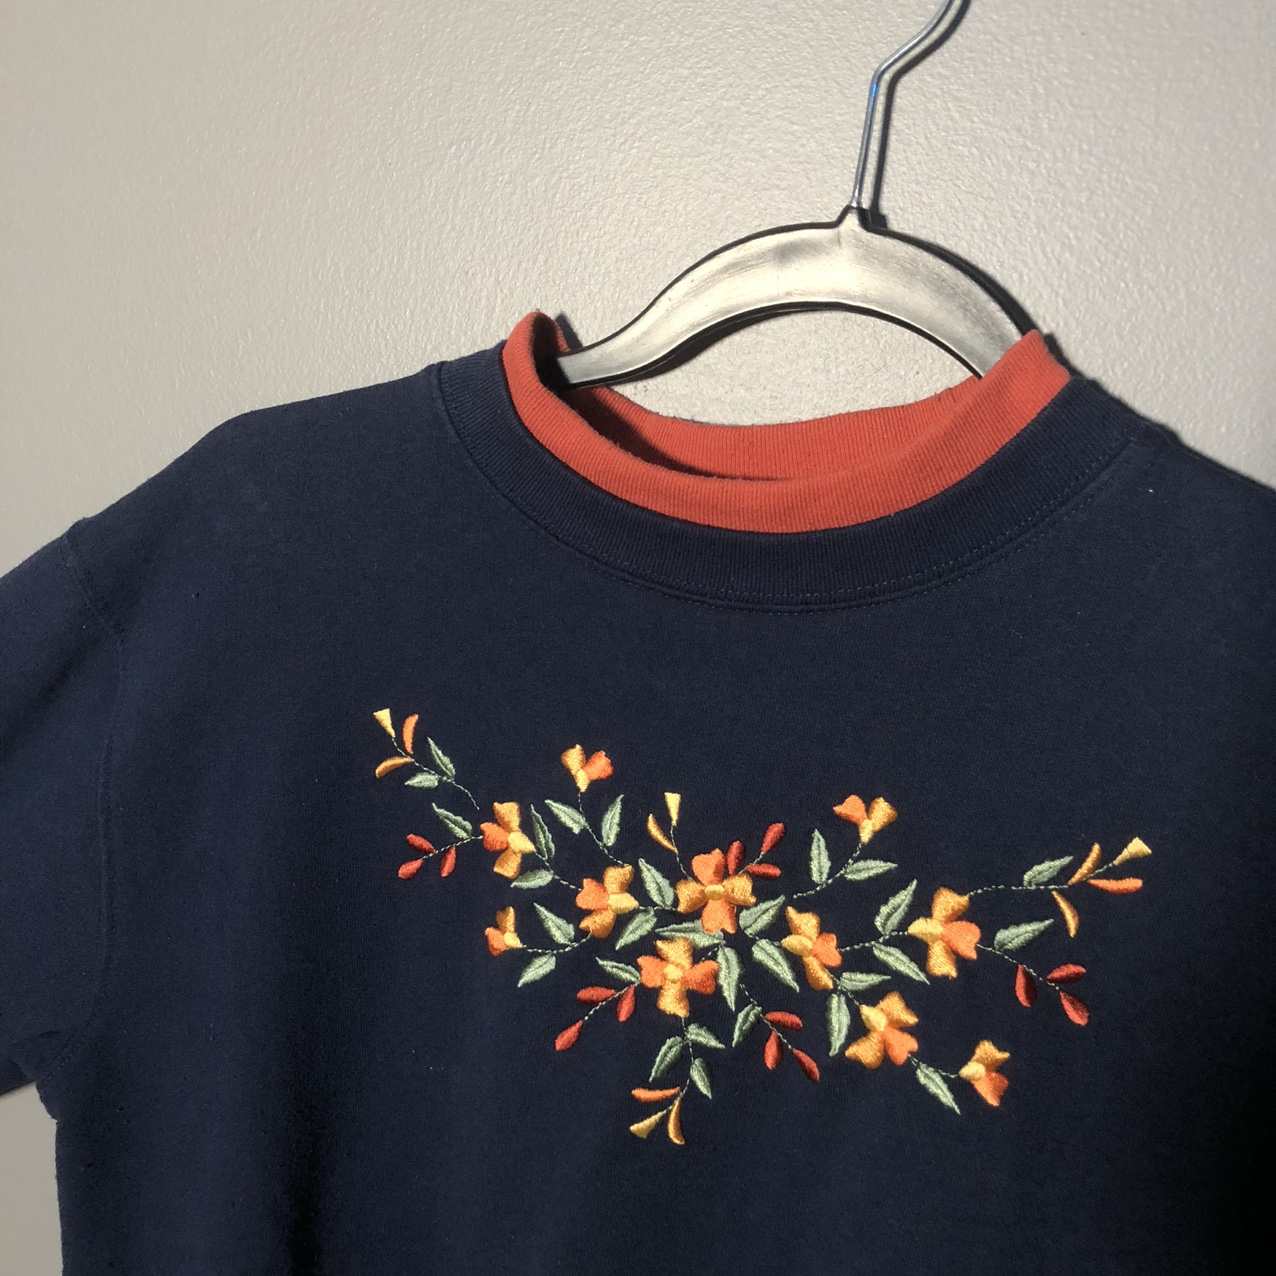 Product Image 1 - absolutely GORGEOUS vintage embroidered navy